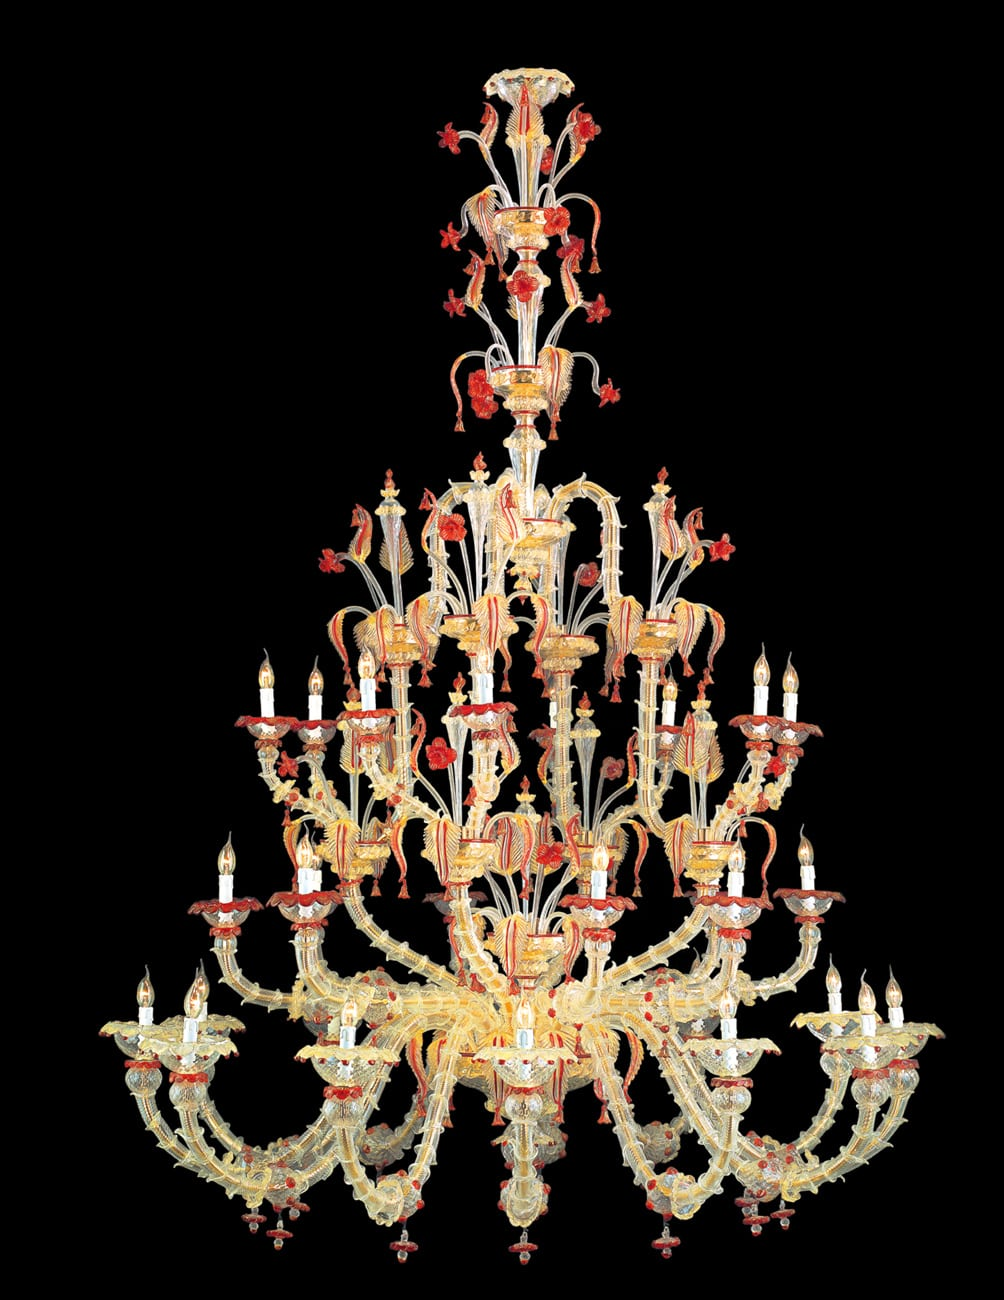 decorative lighting chandeliers 7